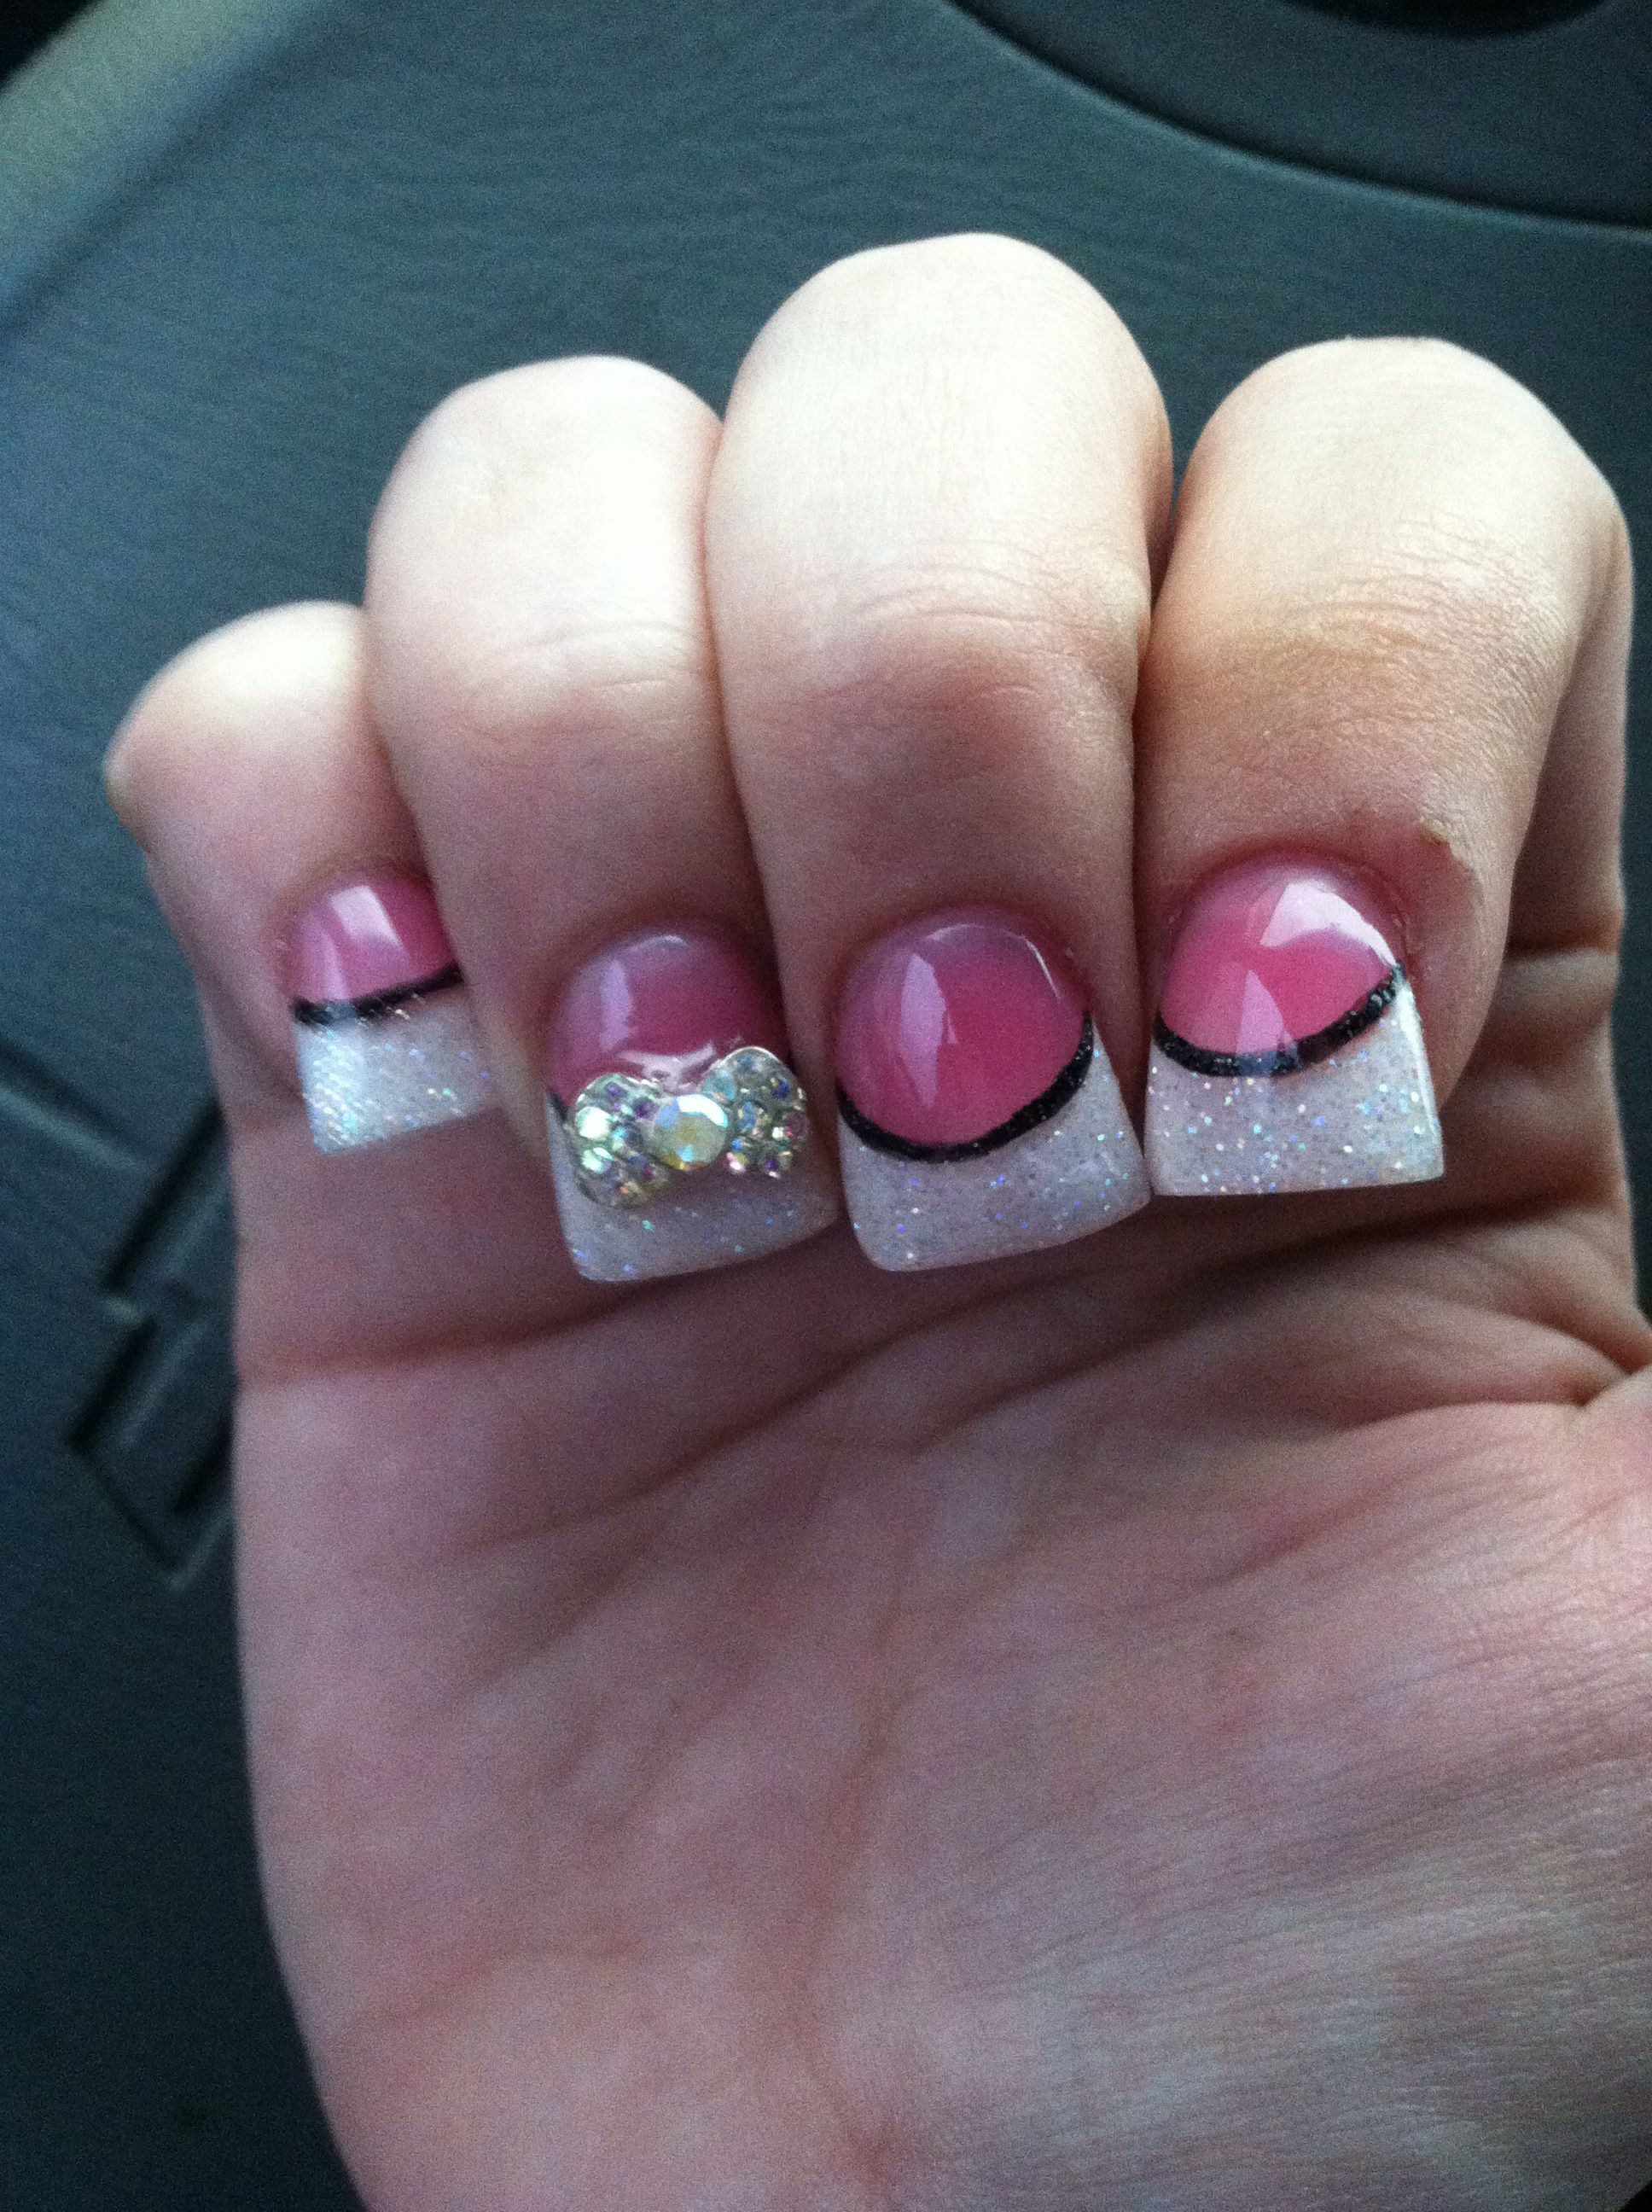 Pin By Cassondra Kight On My Style Flare Acrylic Nails Flare Nails Short Square Acrylic Nails